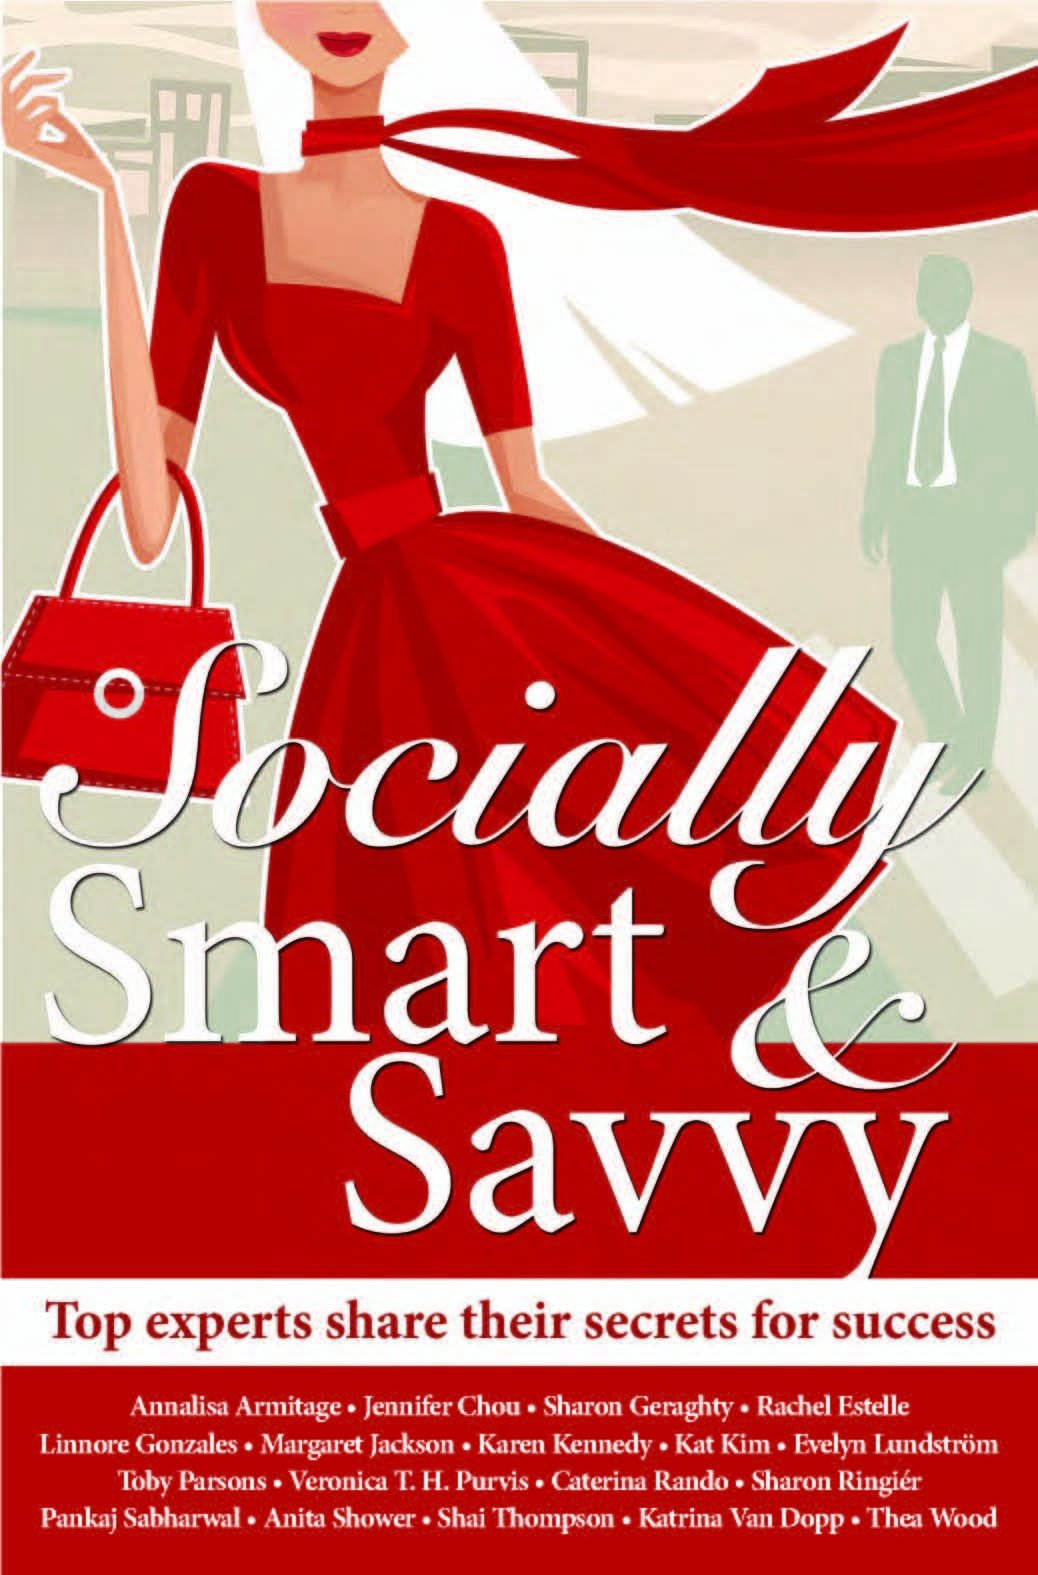 Download Socially Smart & Savvy (Top experts share their secrets for success) pdf